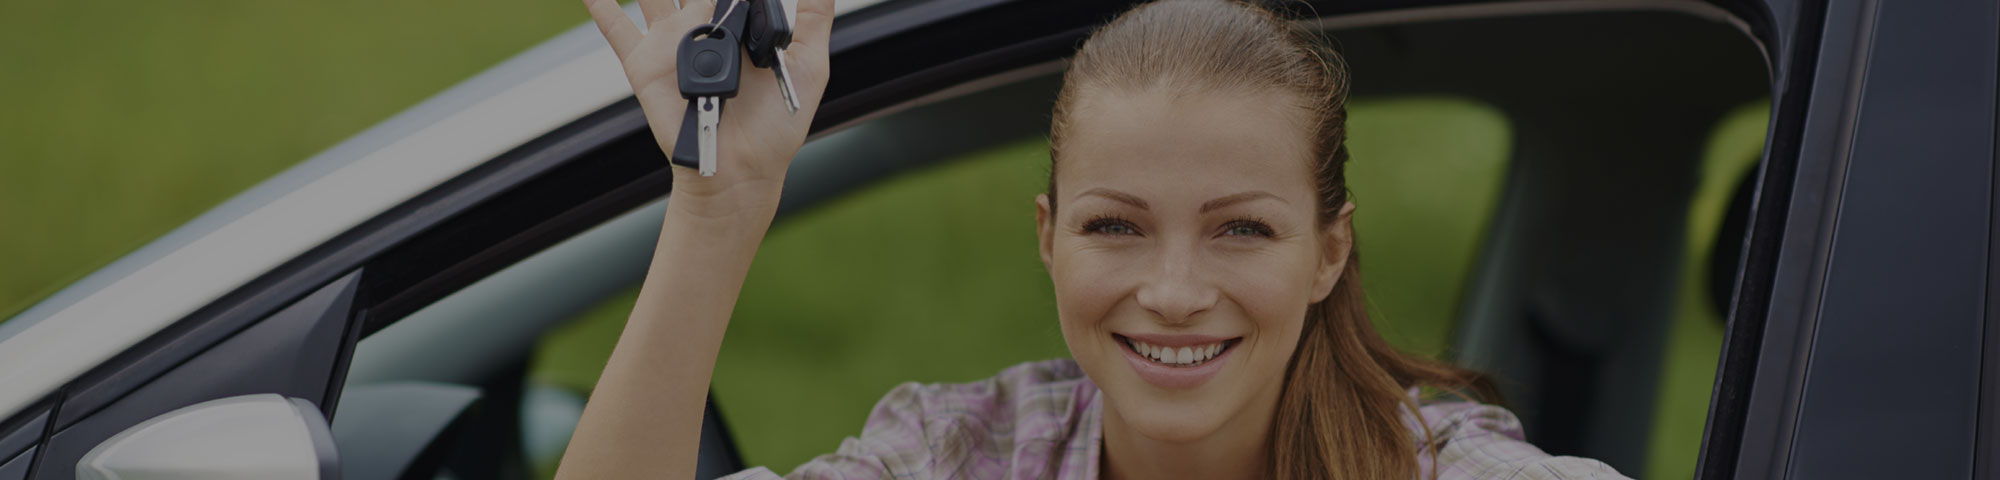 Vancouver Used Car Dealer   Used Car Sales Service and Parts